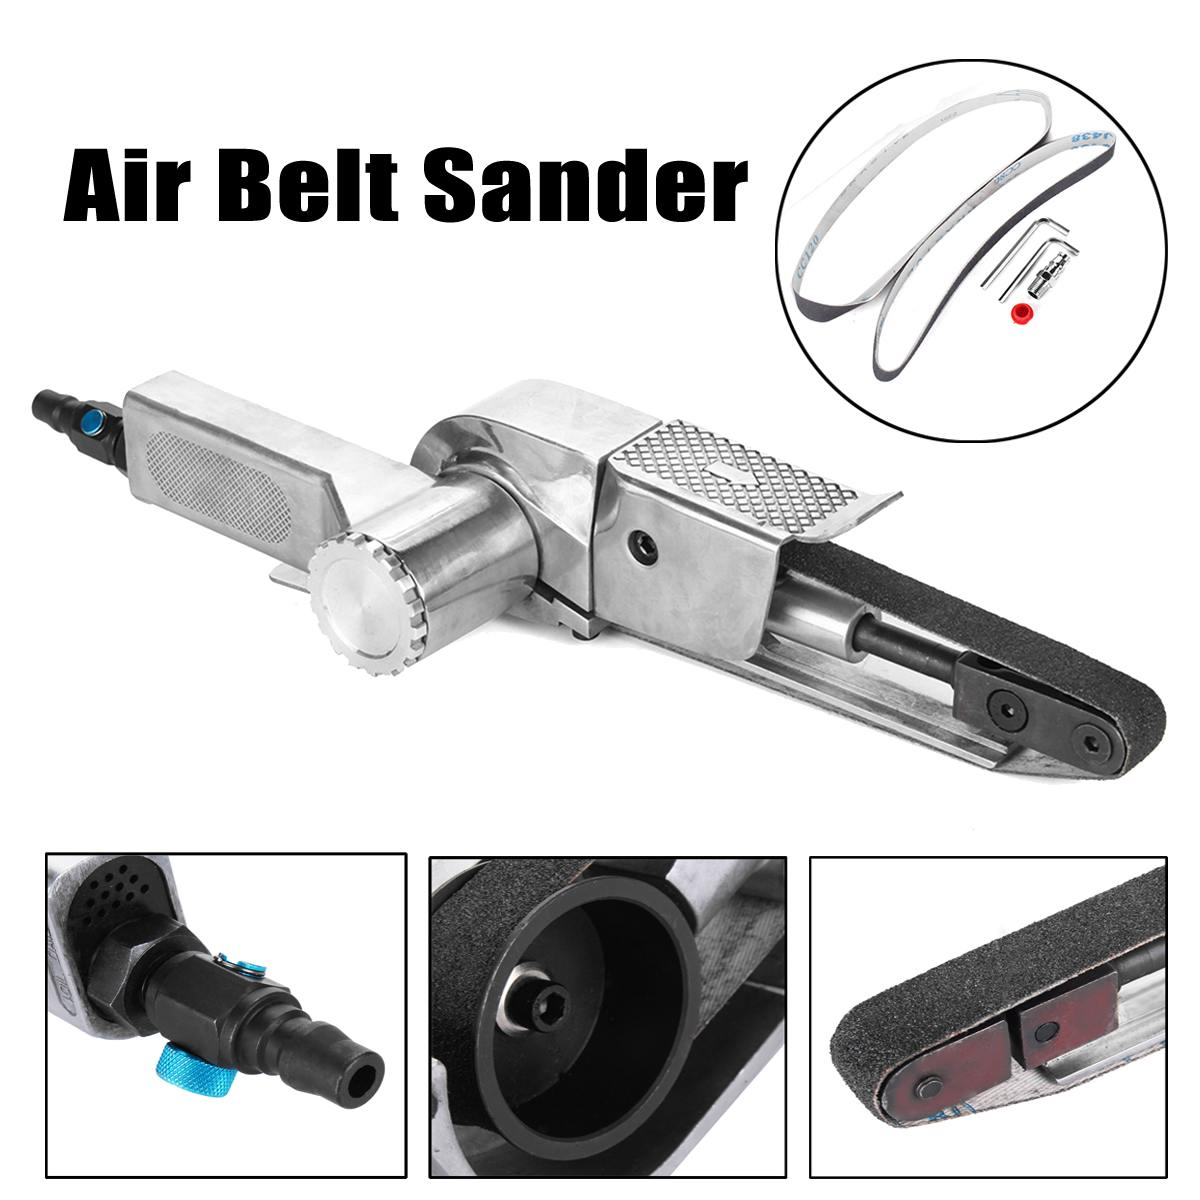 High Quality Premium Air Belt Sander Sanding for Buffing Assorted Vehicle Car Pneumatic Tools 20mmx520mmHigh Quality Premium Air Belt Sander Sanding for Buffing Assorted Vehicle Car Pneumatic Tools 20mmx520mm